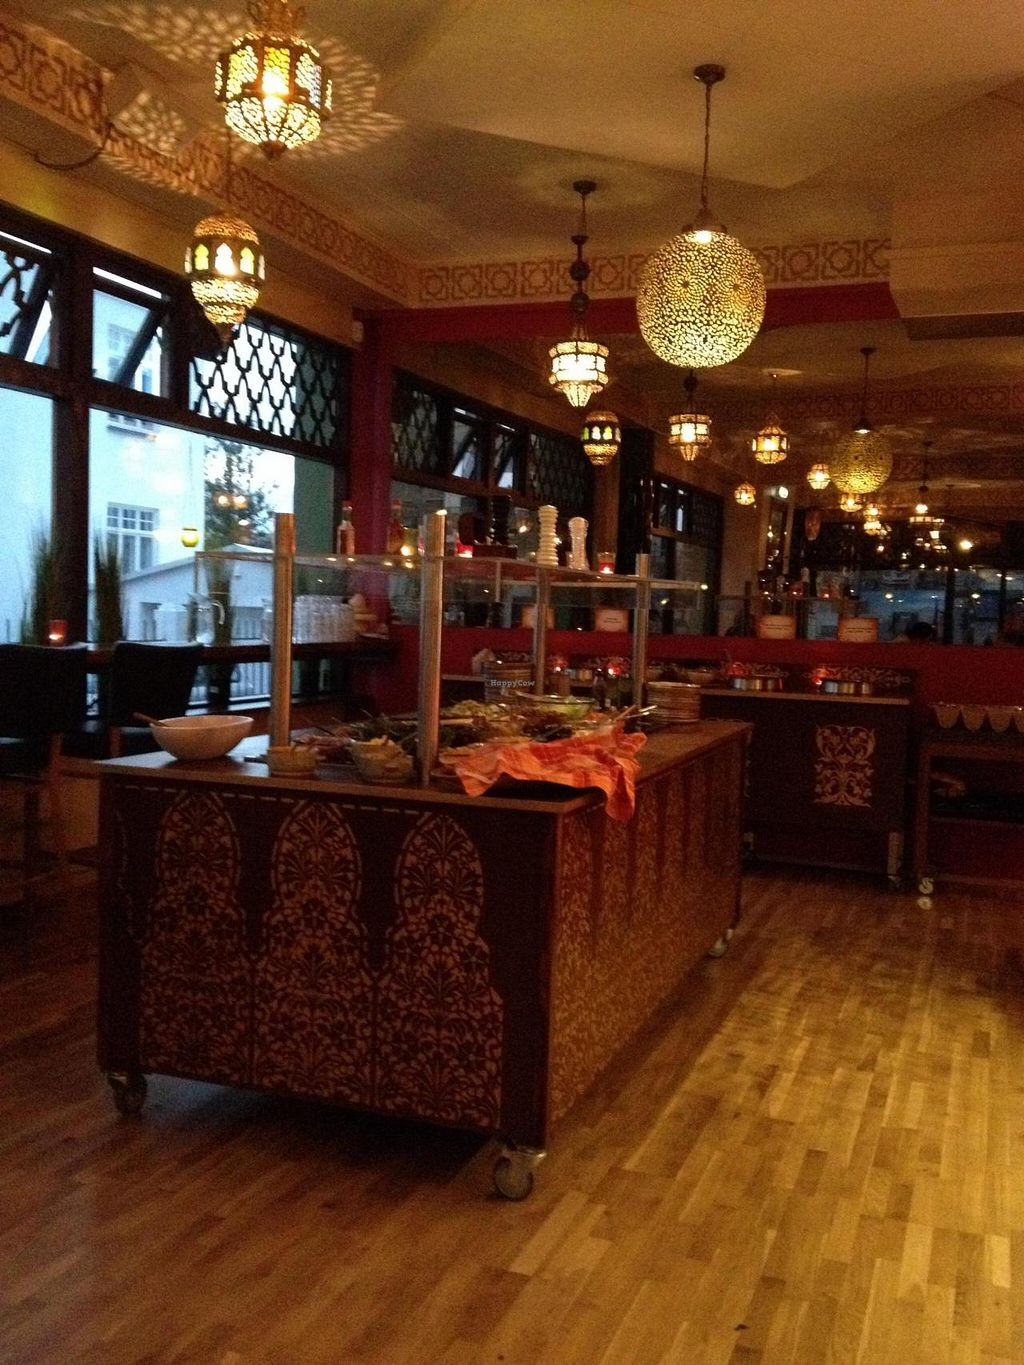 """Photo of CLOSED: Kryddlegin Hjortu  by <a href=""""/members/profile/Luhak11"""">Luhak11</a> <br/>New restaurant unit at Hverfisgata, 33 <br/> August 30, 2014  - <a href='/contact/abuse/image/42264/78633'>Report</a>"""